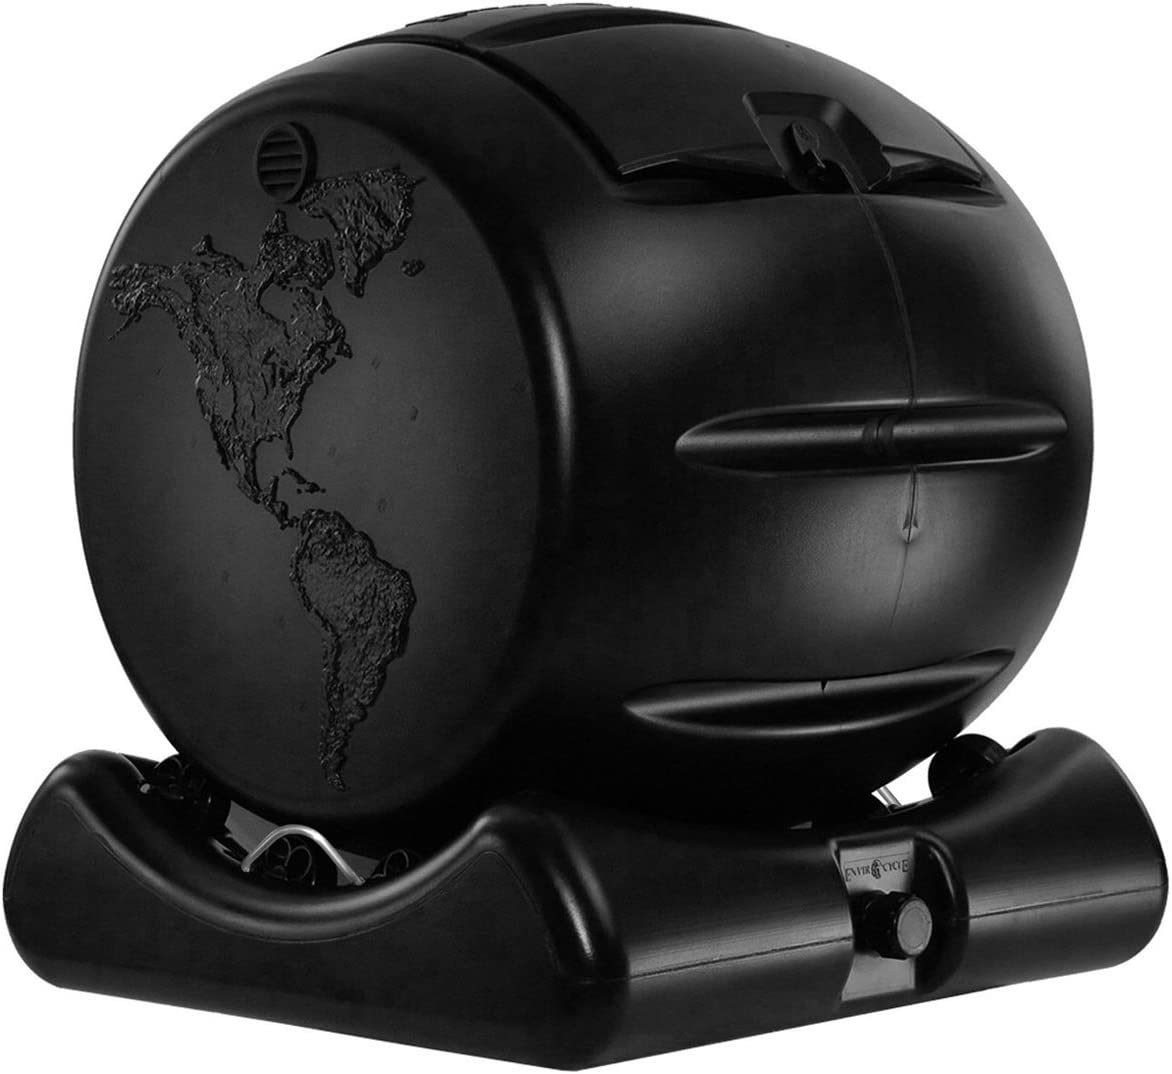 ENVIROCYCLE COMPOSTER